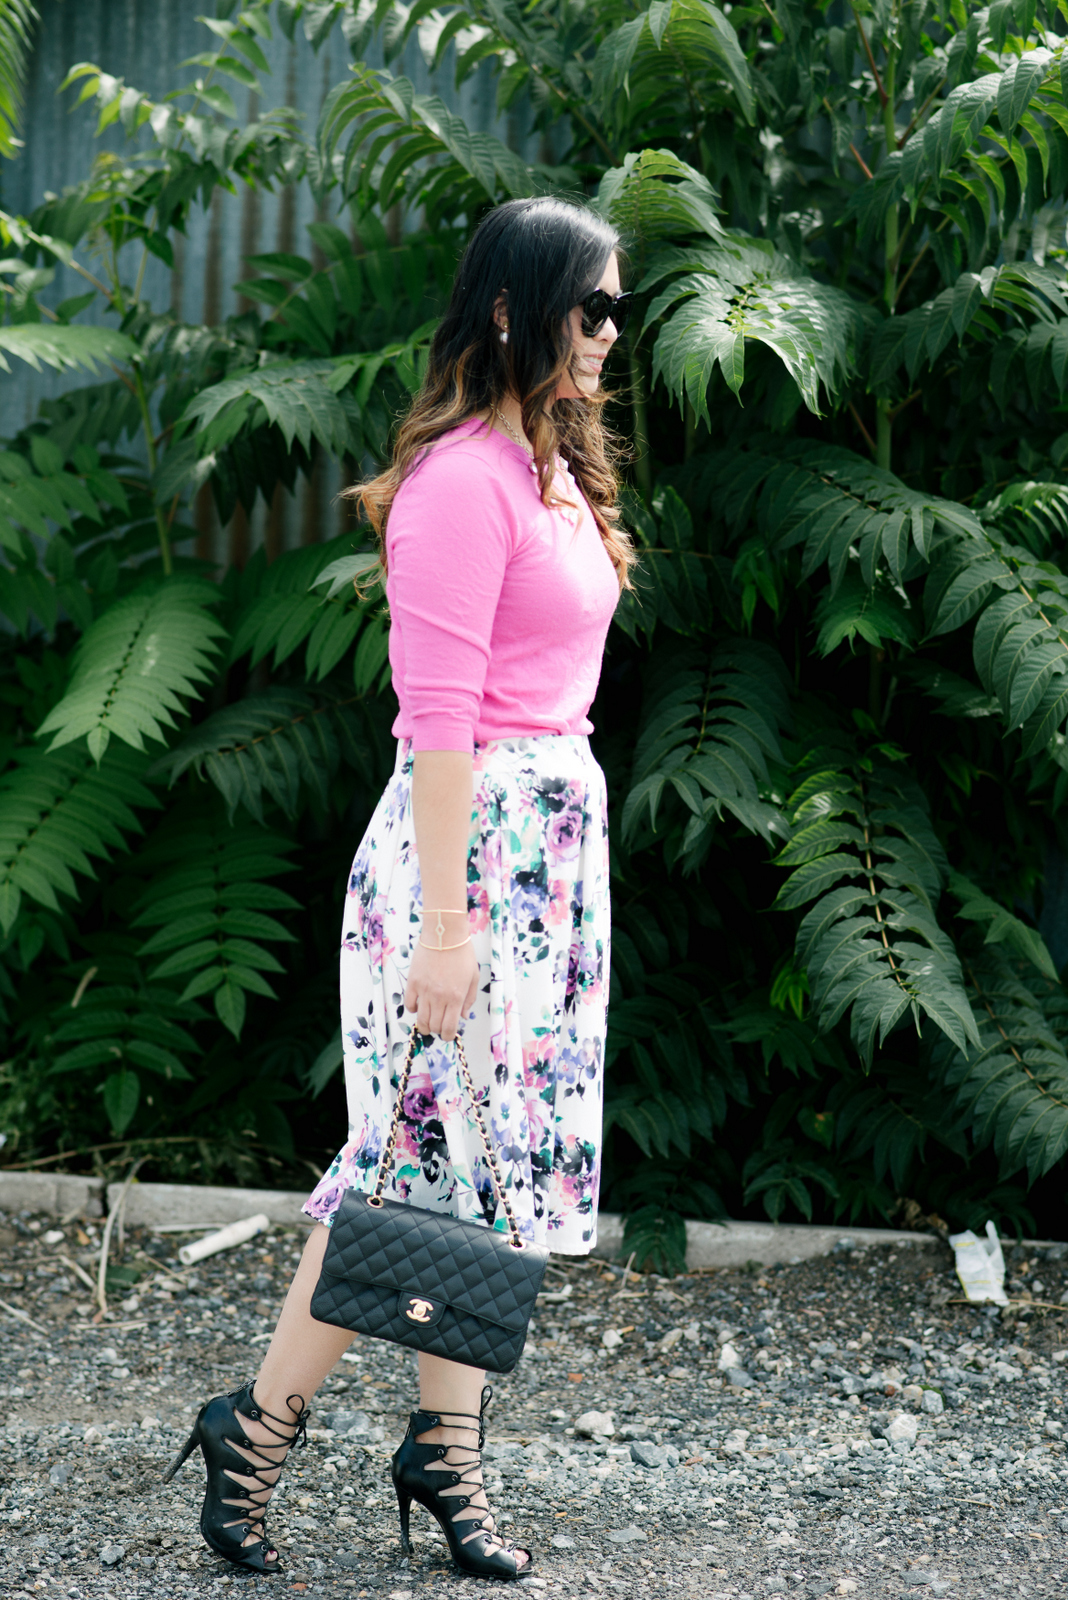 Floral skirt and lace up shoes